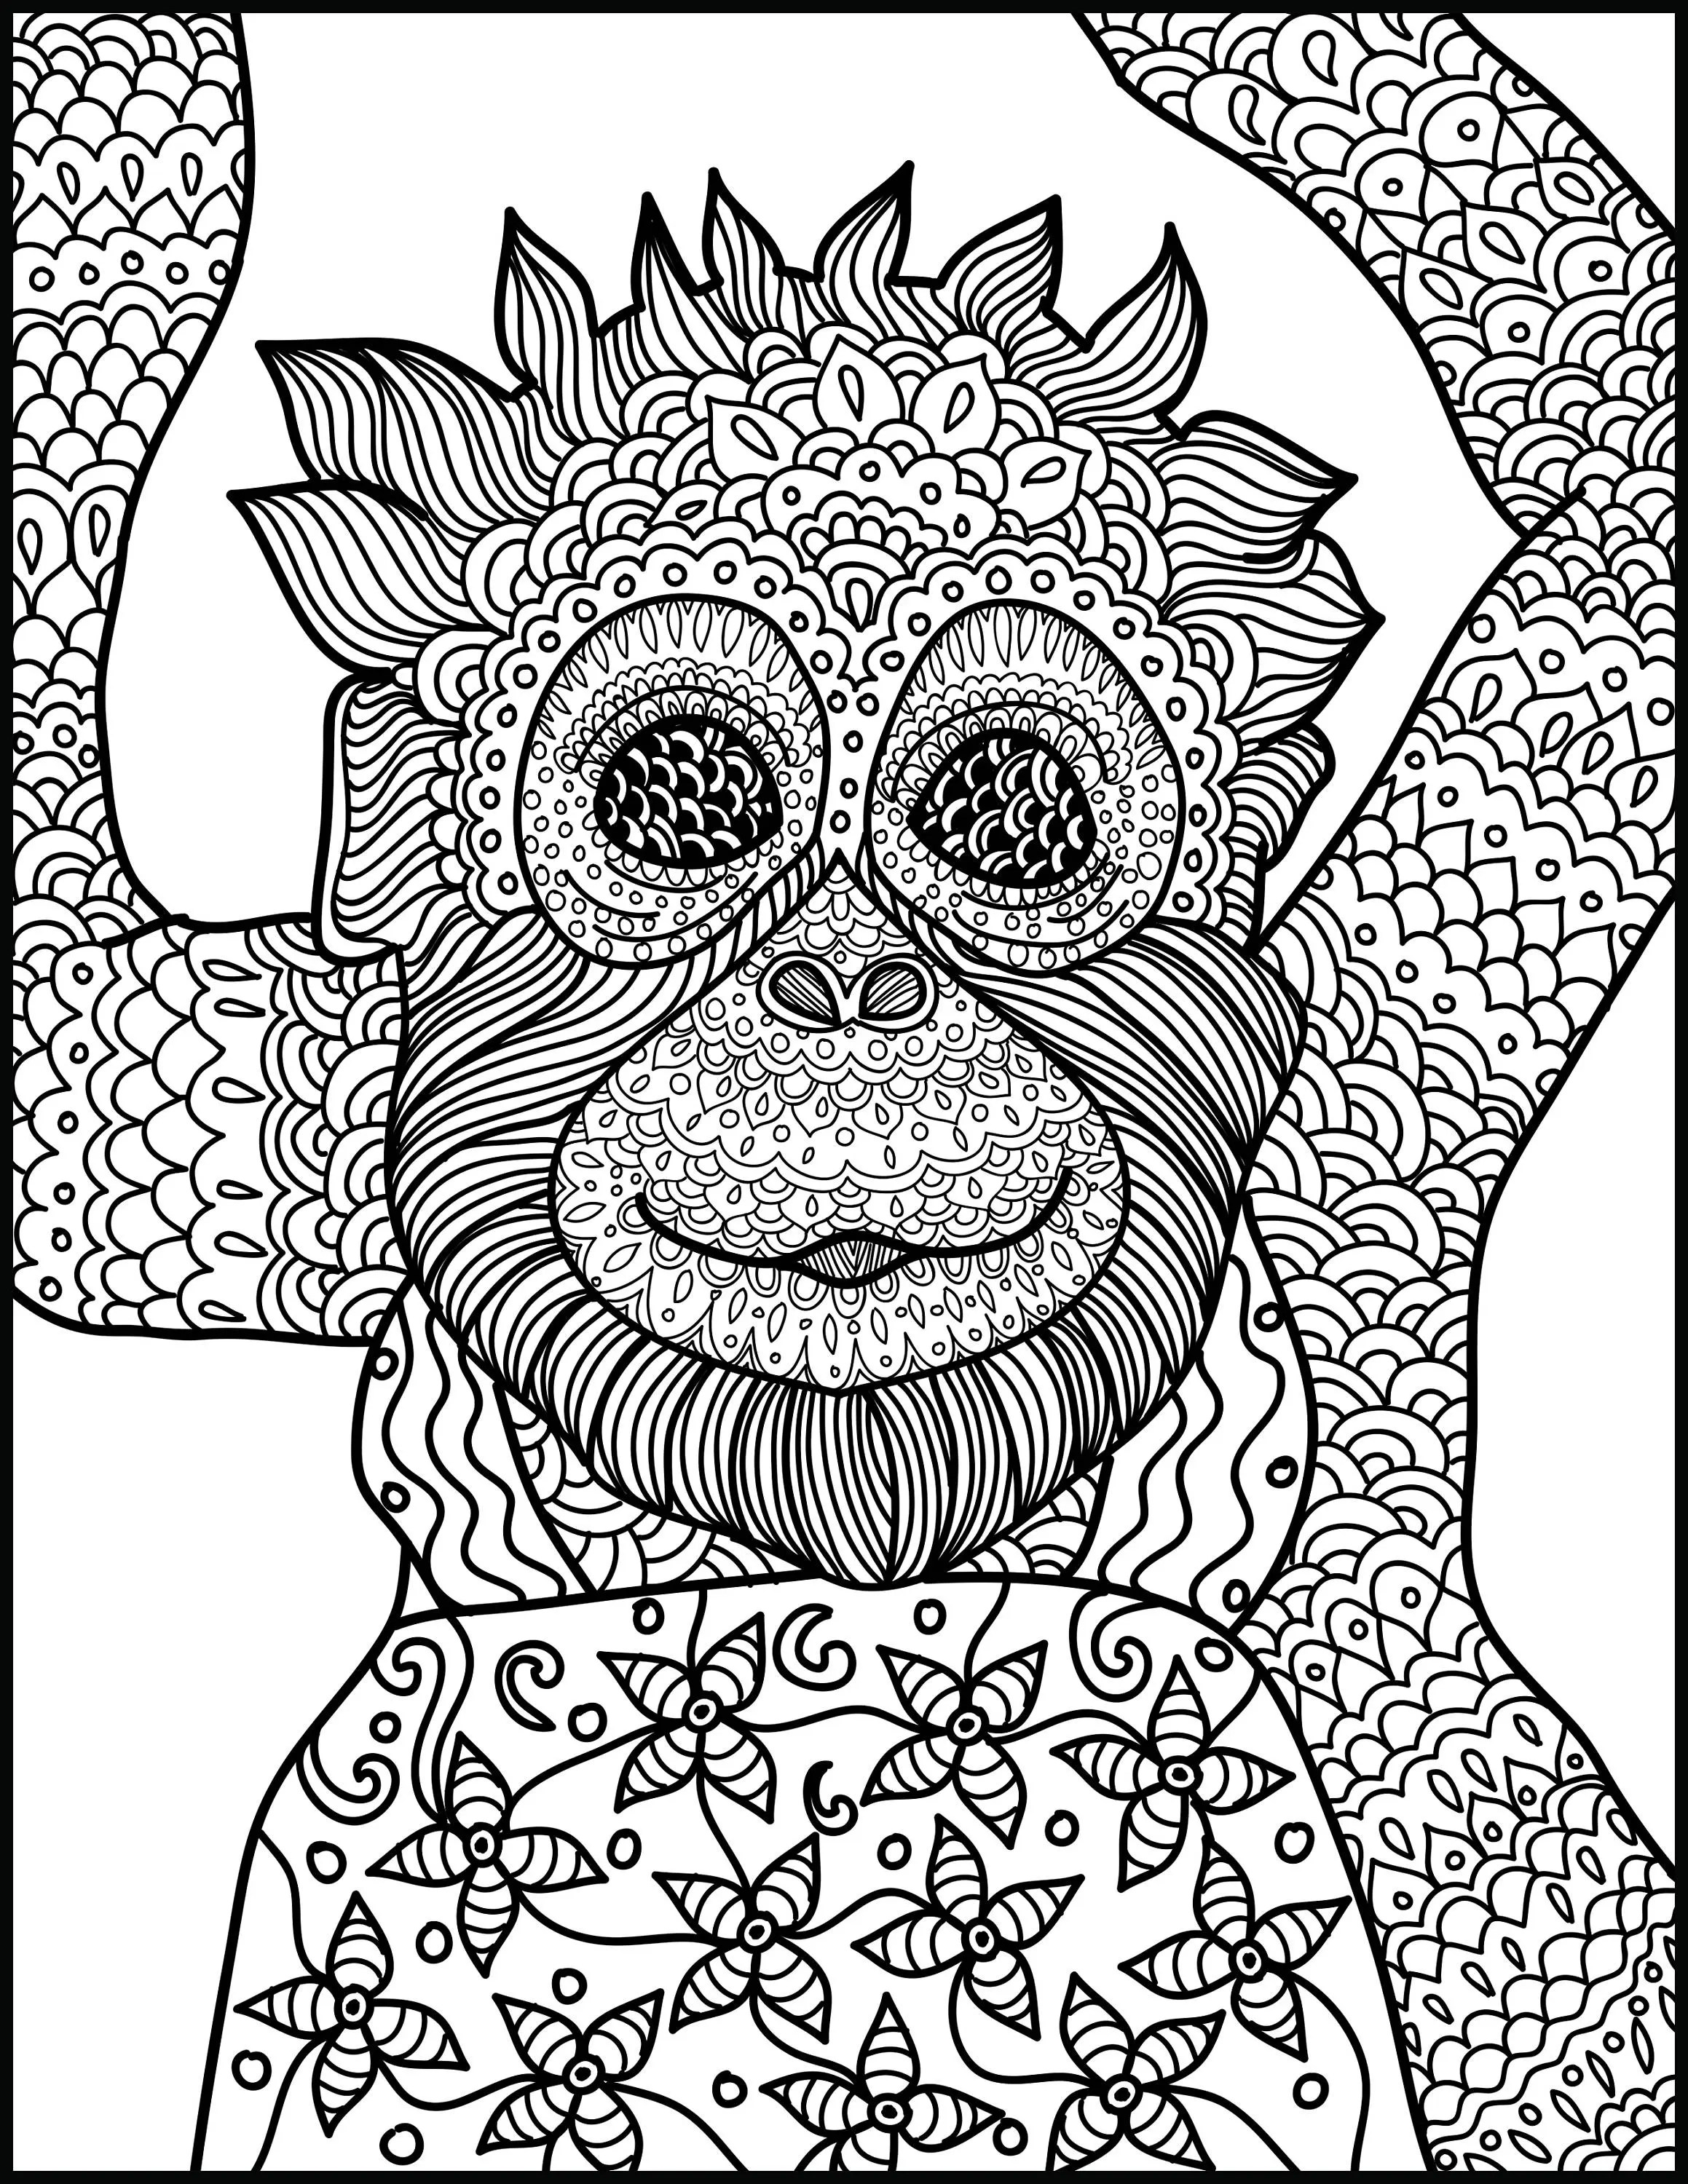 Animal Coloring Page: Monkey Printable Adult Coloring Page | free printable coloring pages for adults animals